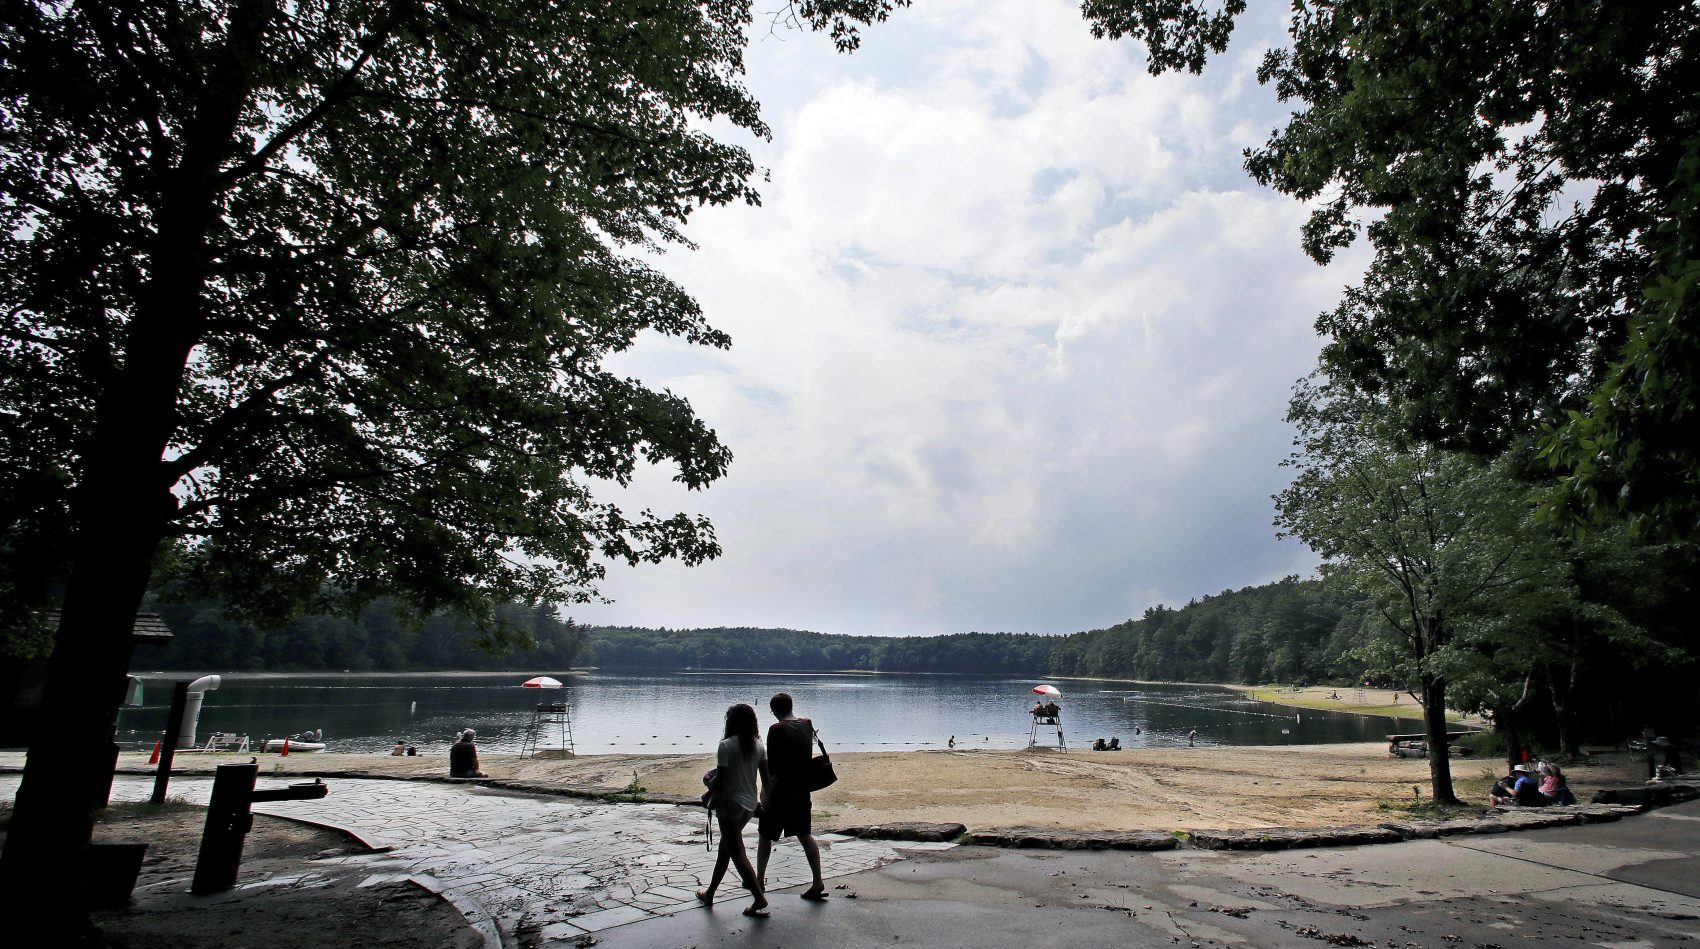 A couple walks along the shore of Walden Pond in Concord, Mass. in 2017. (Charles Krupa/AP)